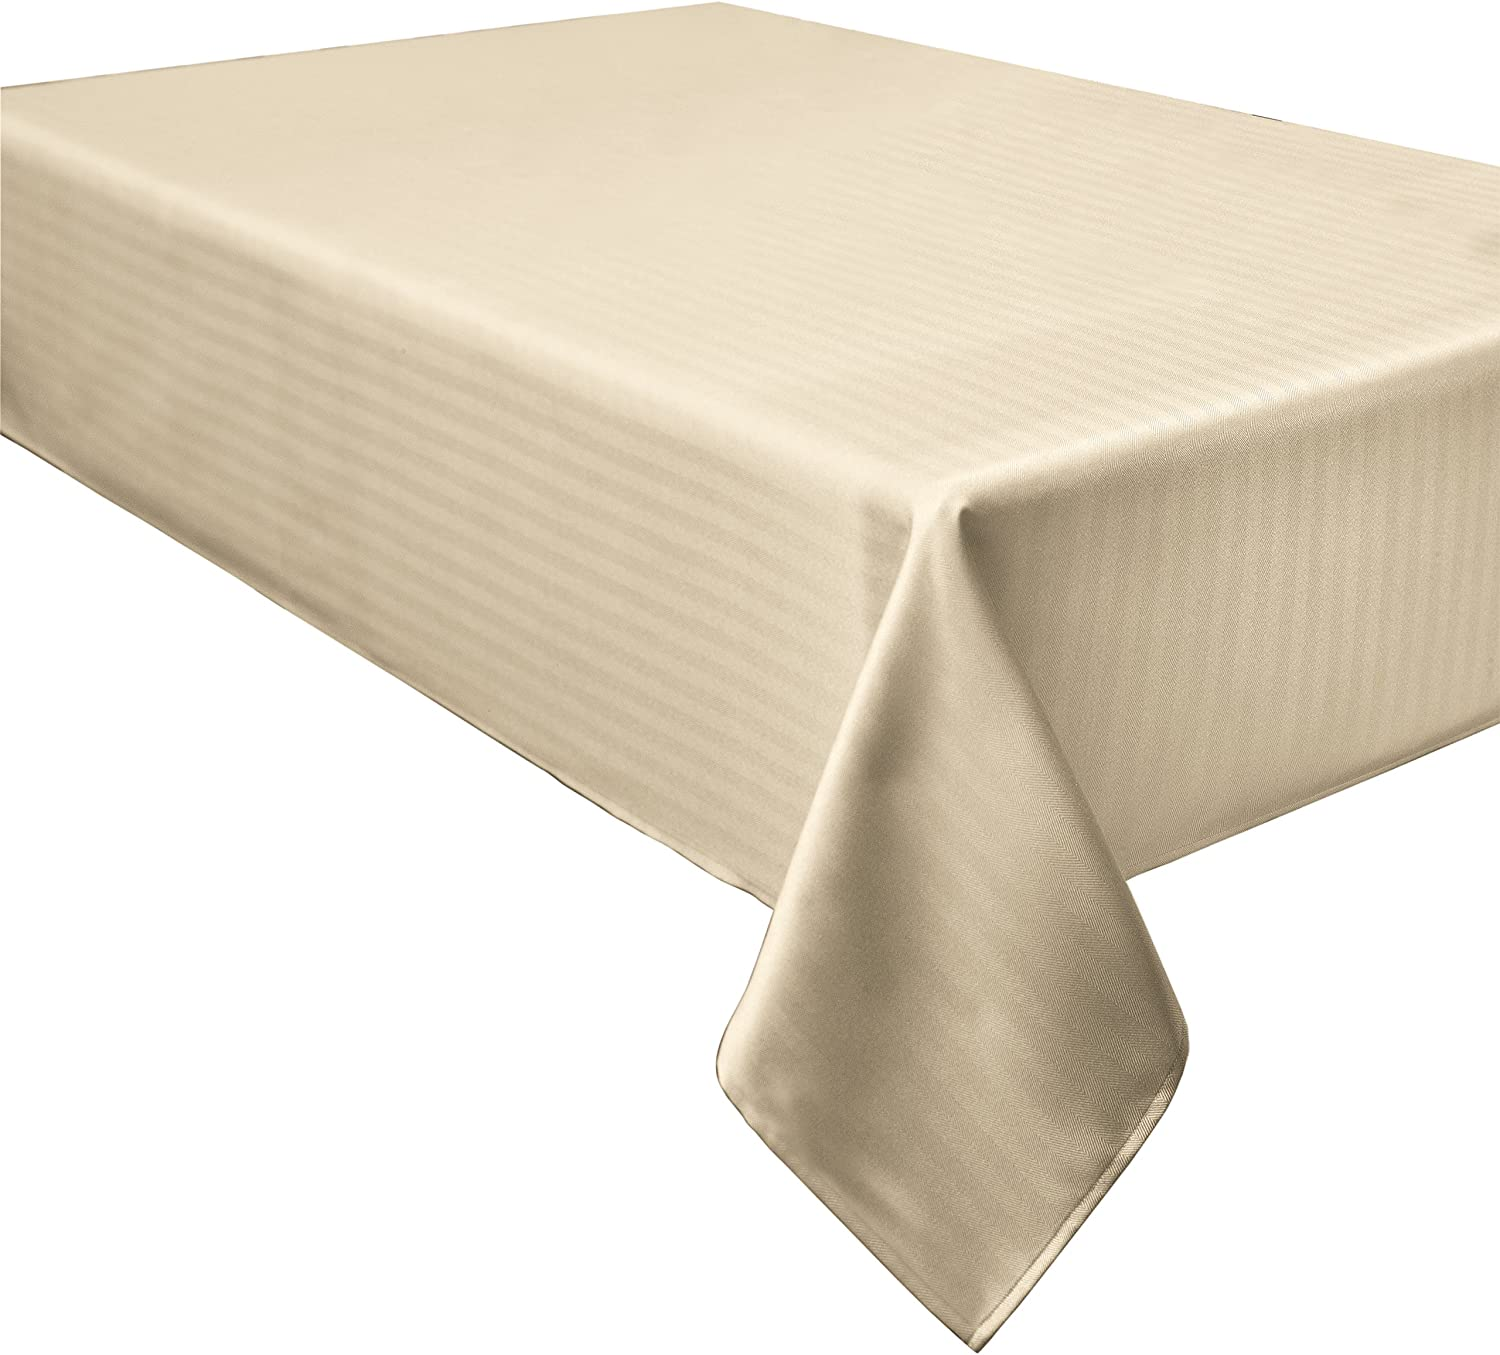 Creative Dining Group Herringbone Weave Spillproof Tablecloth, 60 by 120-Inch, Cream